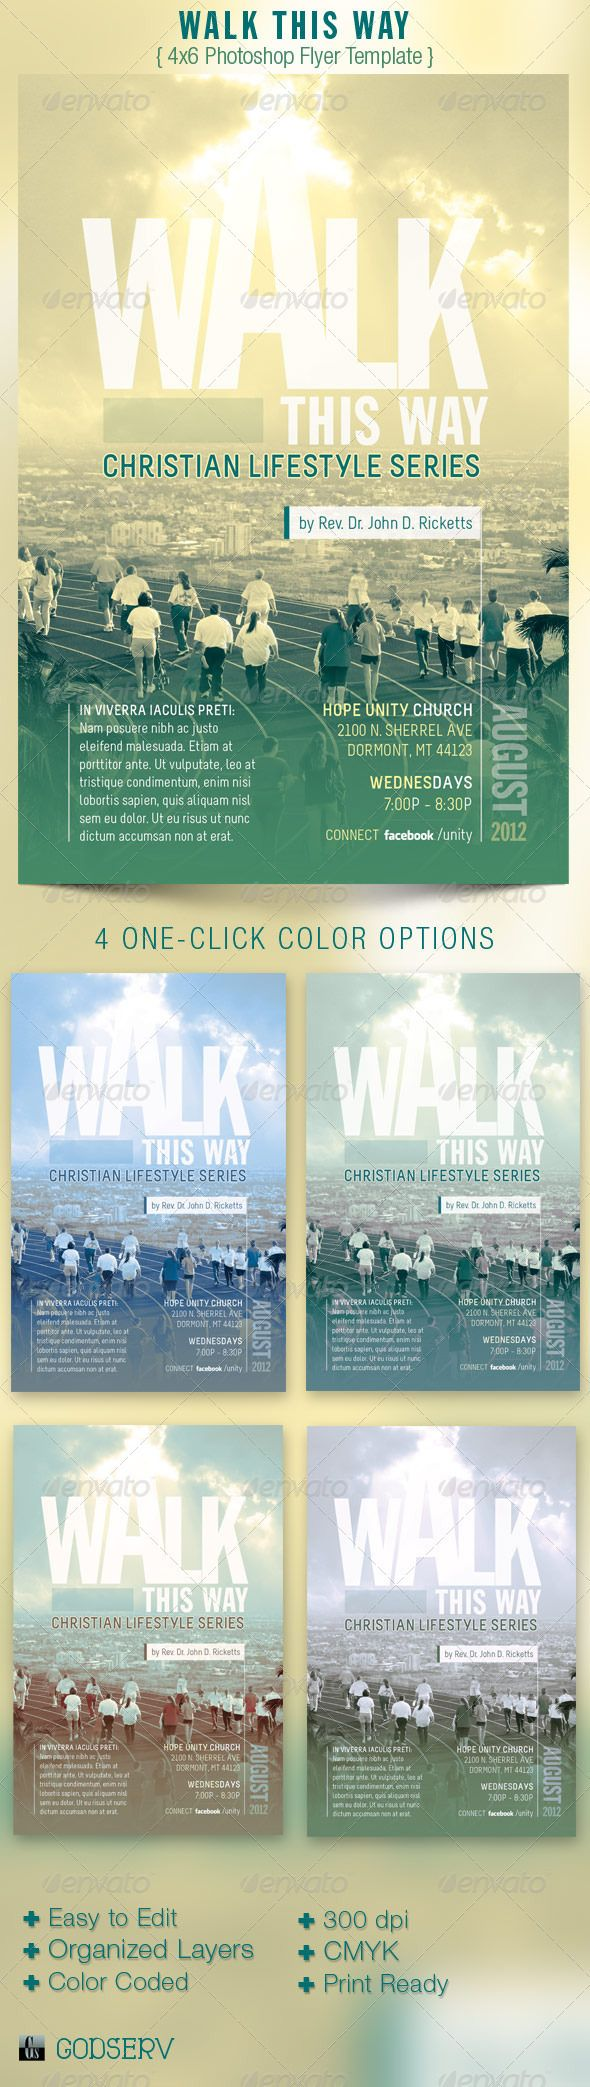 Walk this way church flyer template walk this way fonts for Research study flyer template